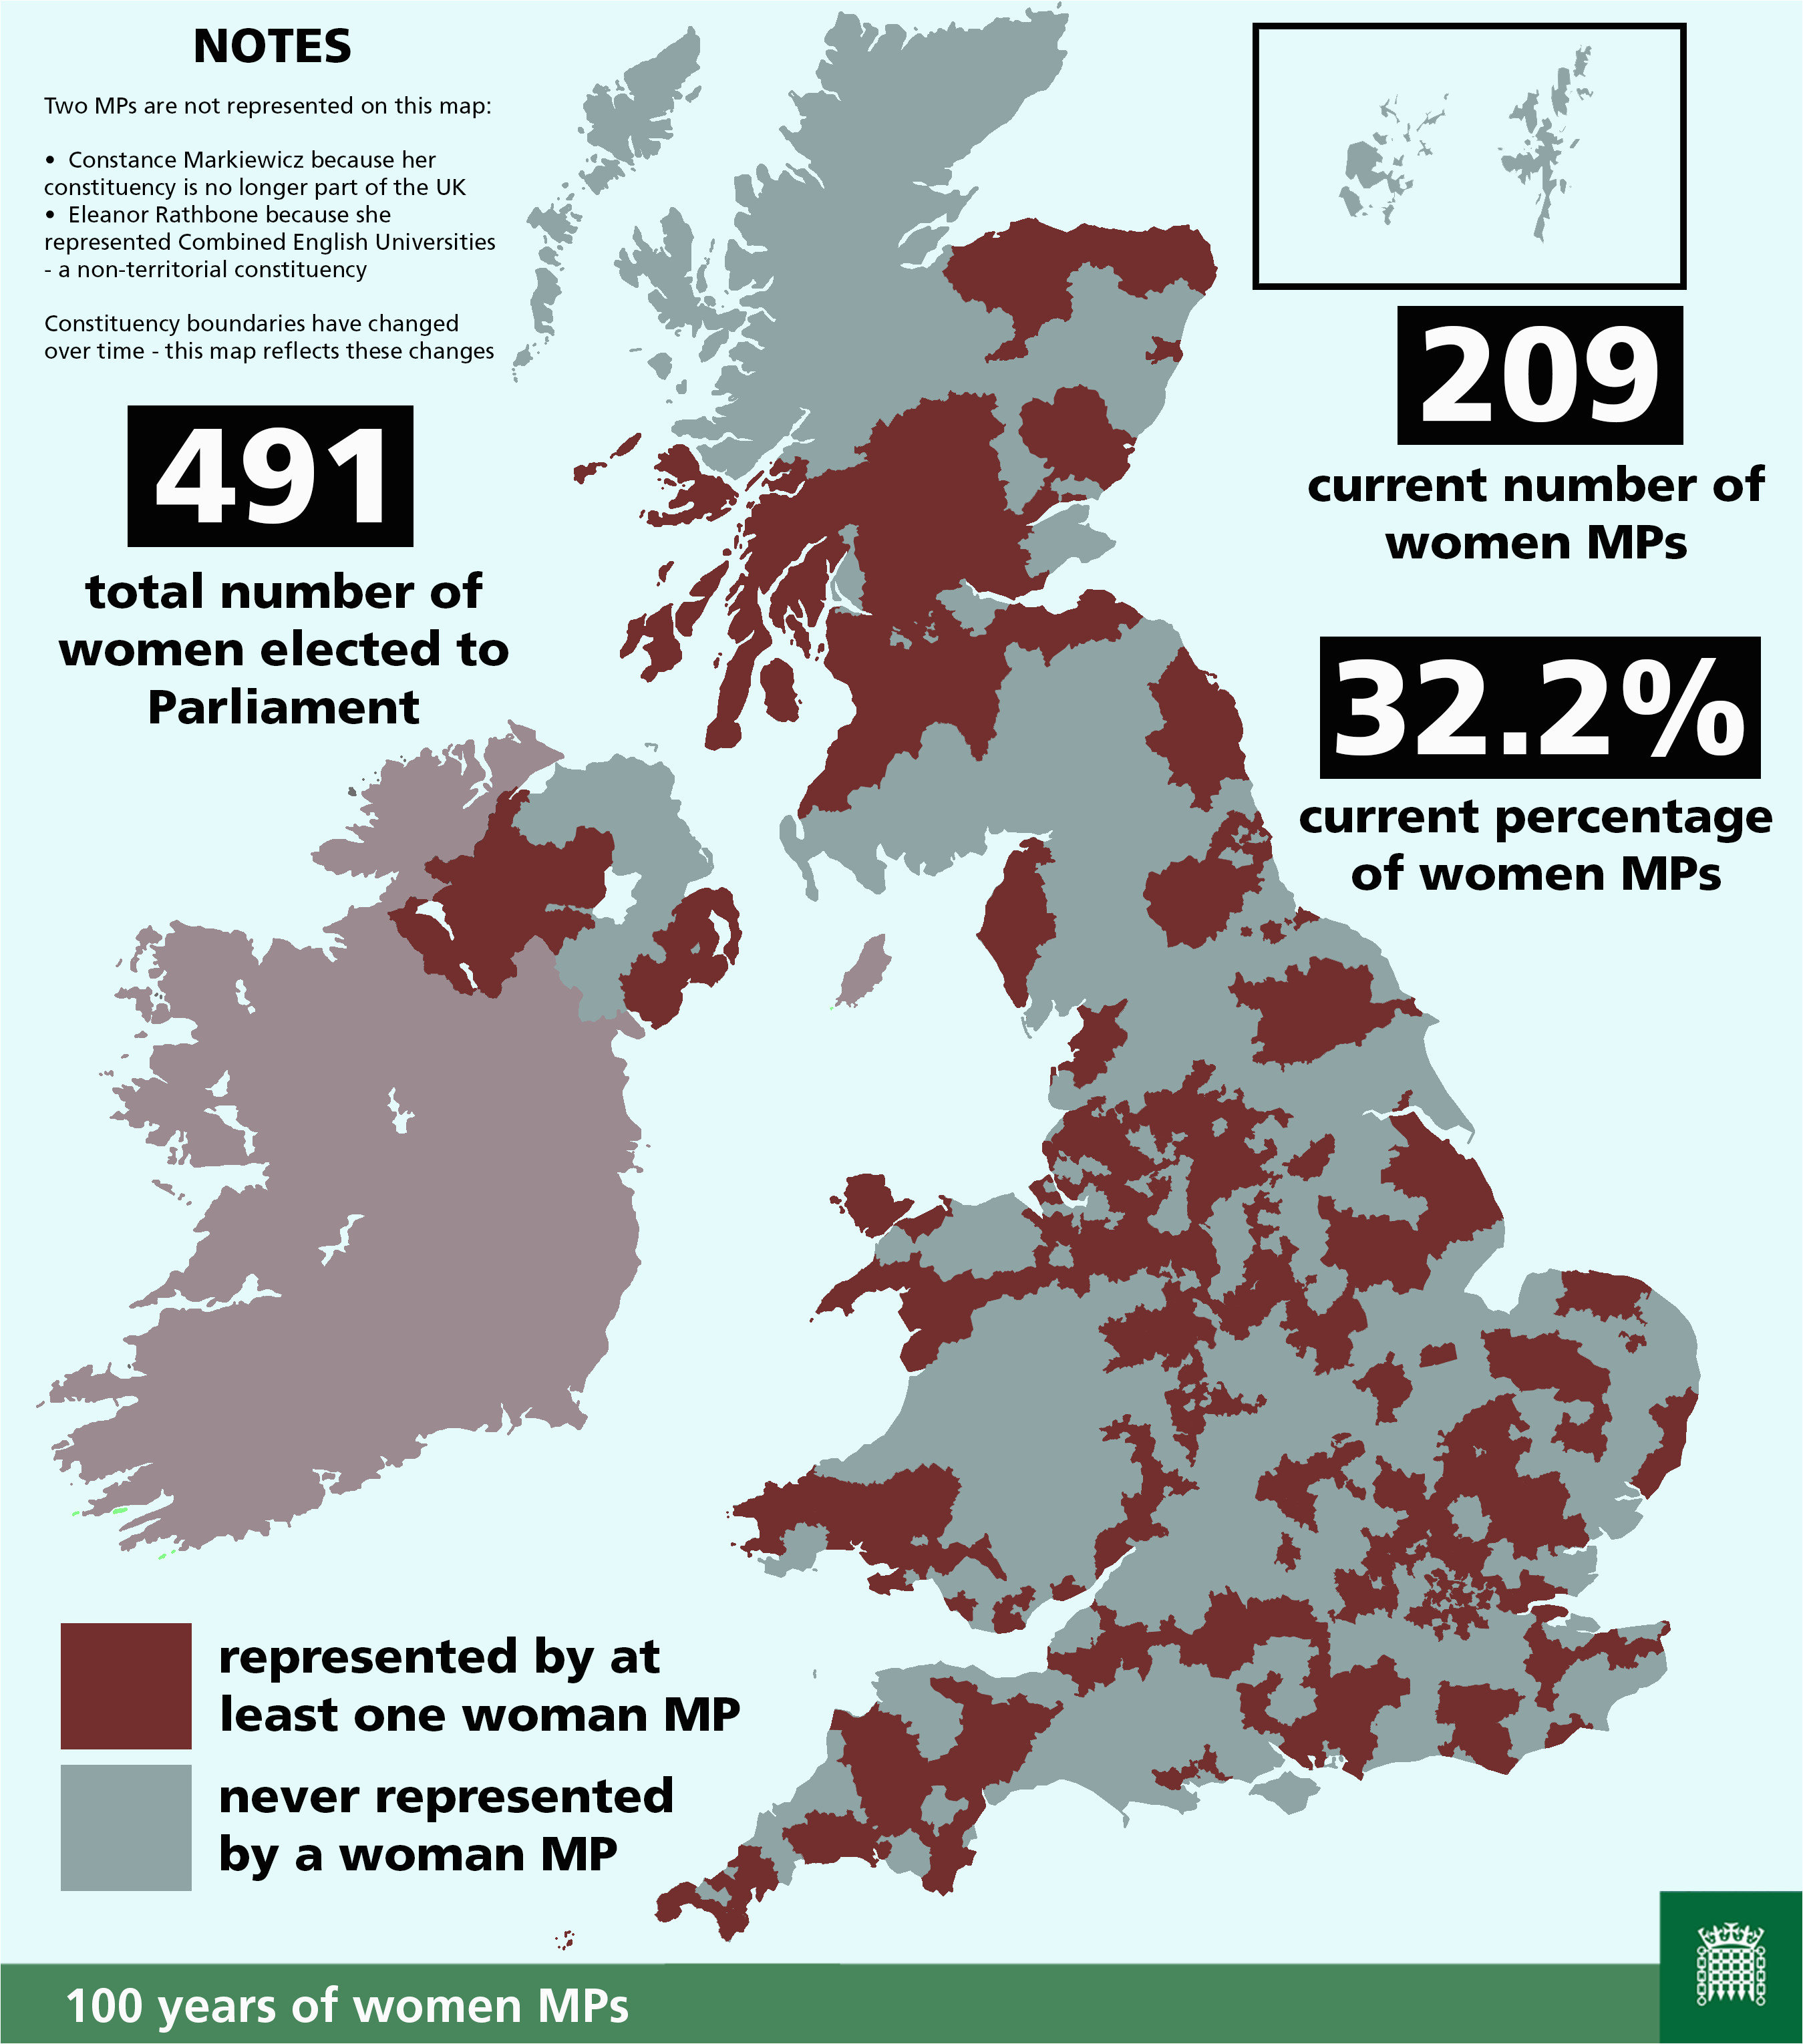 which areas of the uk have ever been represented by a woman